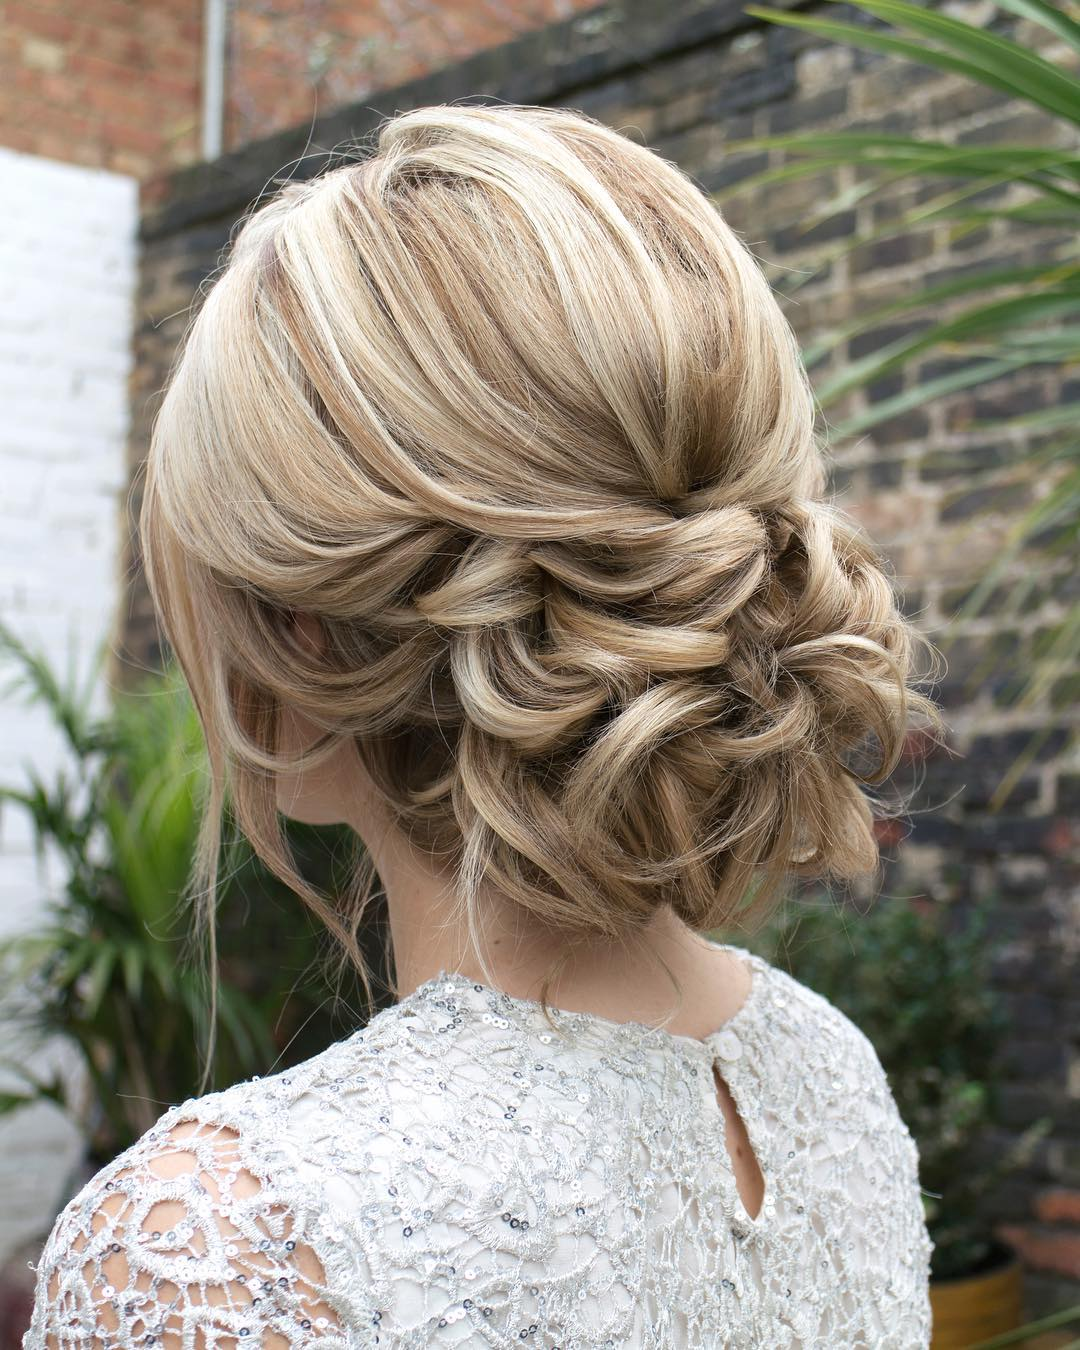 12. Low Loopy Updo